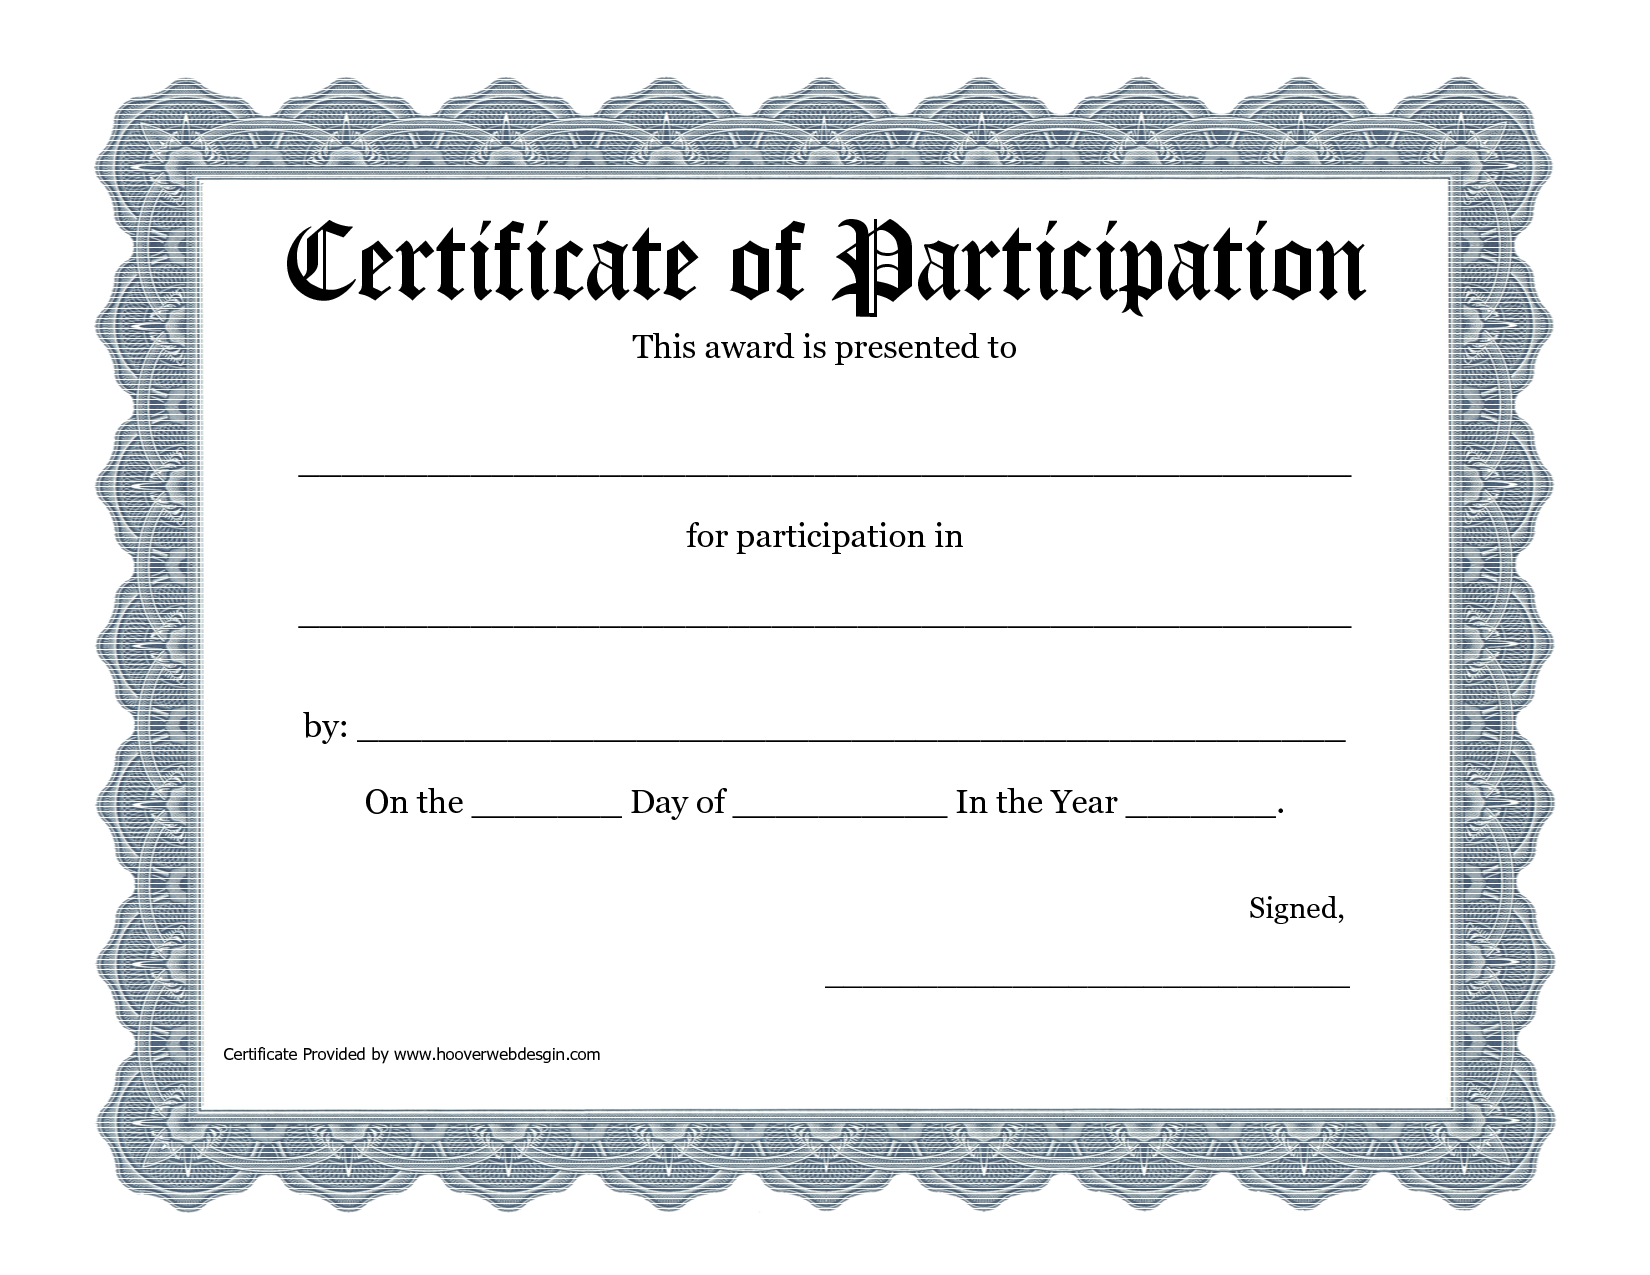 Certificate Of Participation Template Pdf Pertaining To Certificate Of Participation Template Pdf